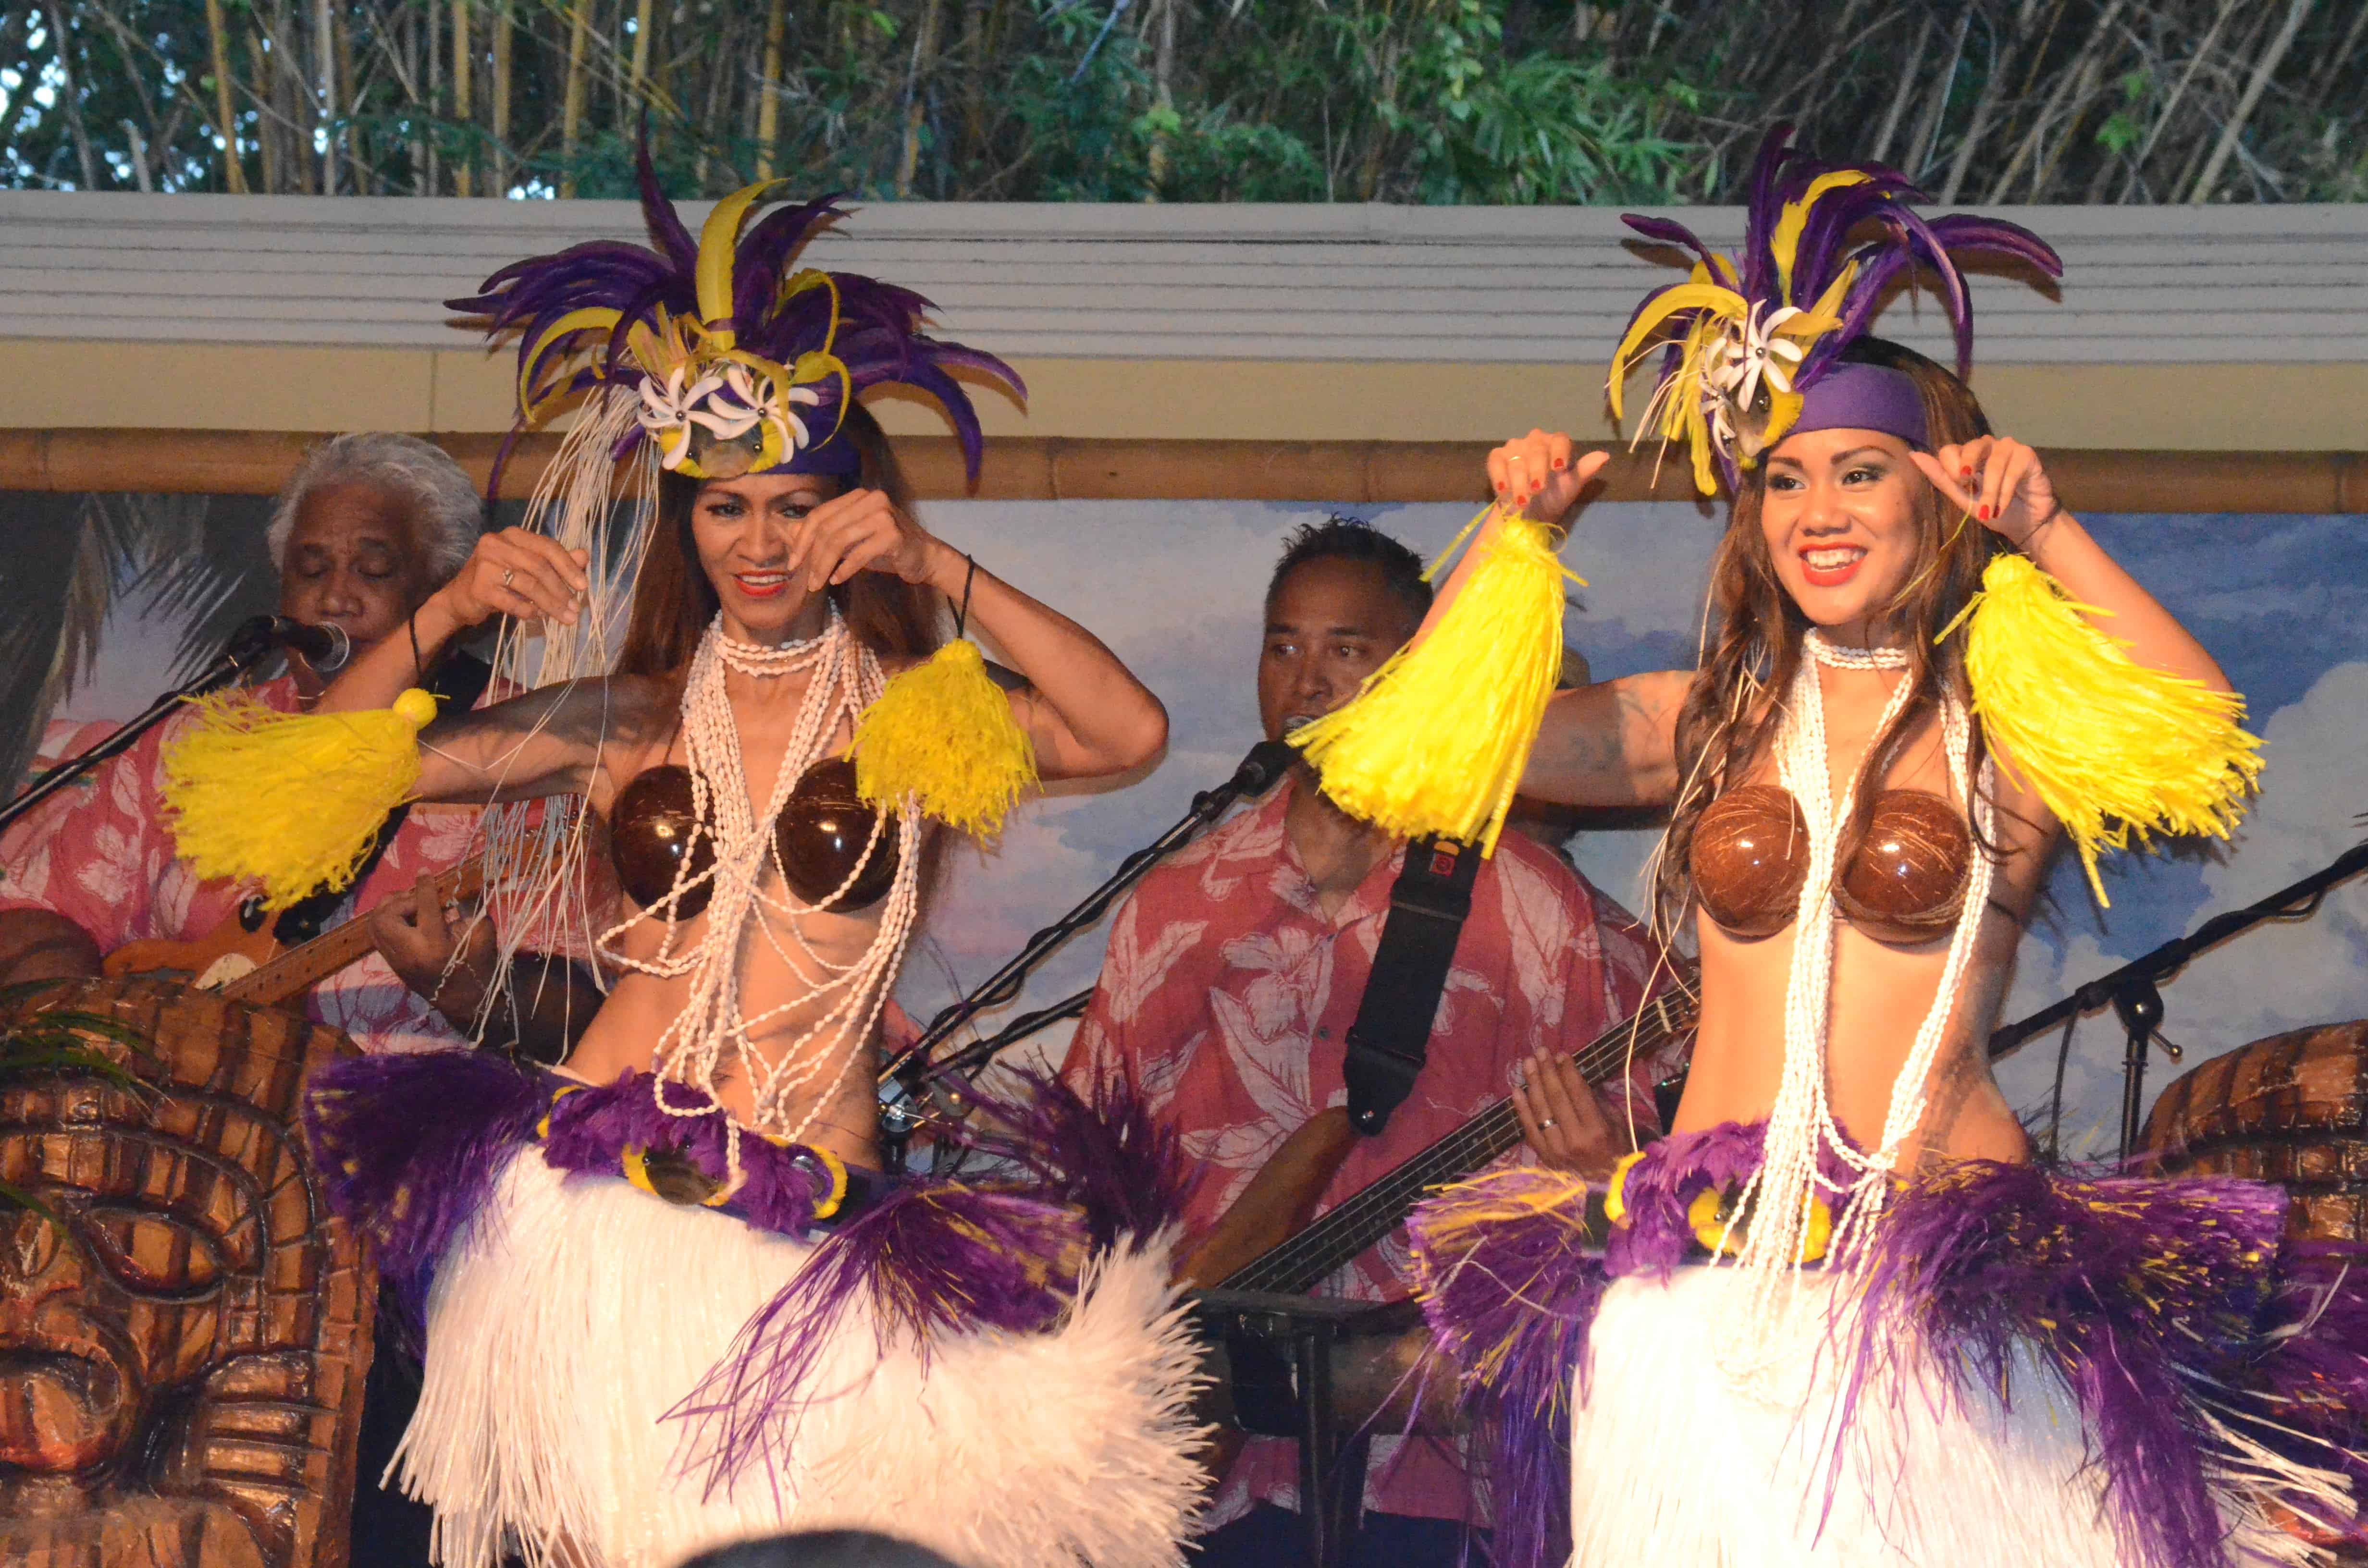 Luau girls at the Royal Pacific Hotel